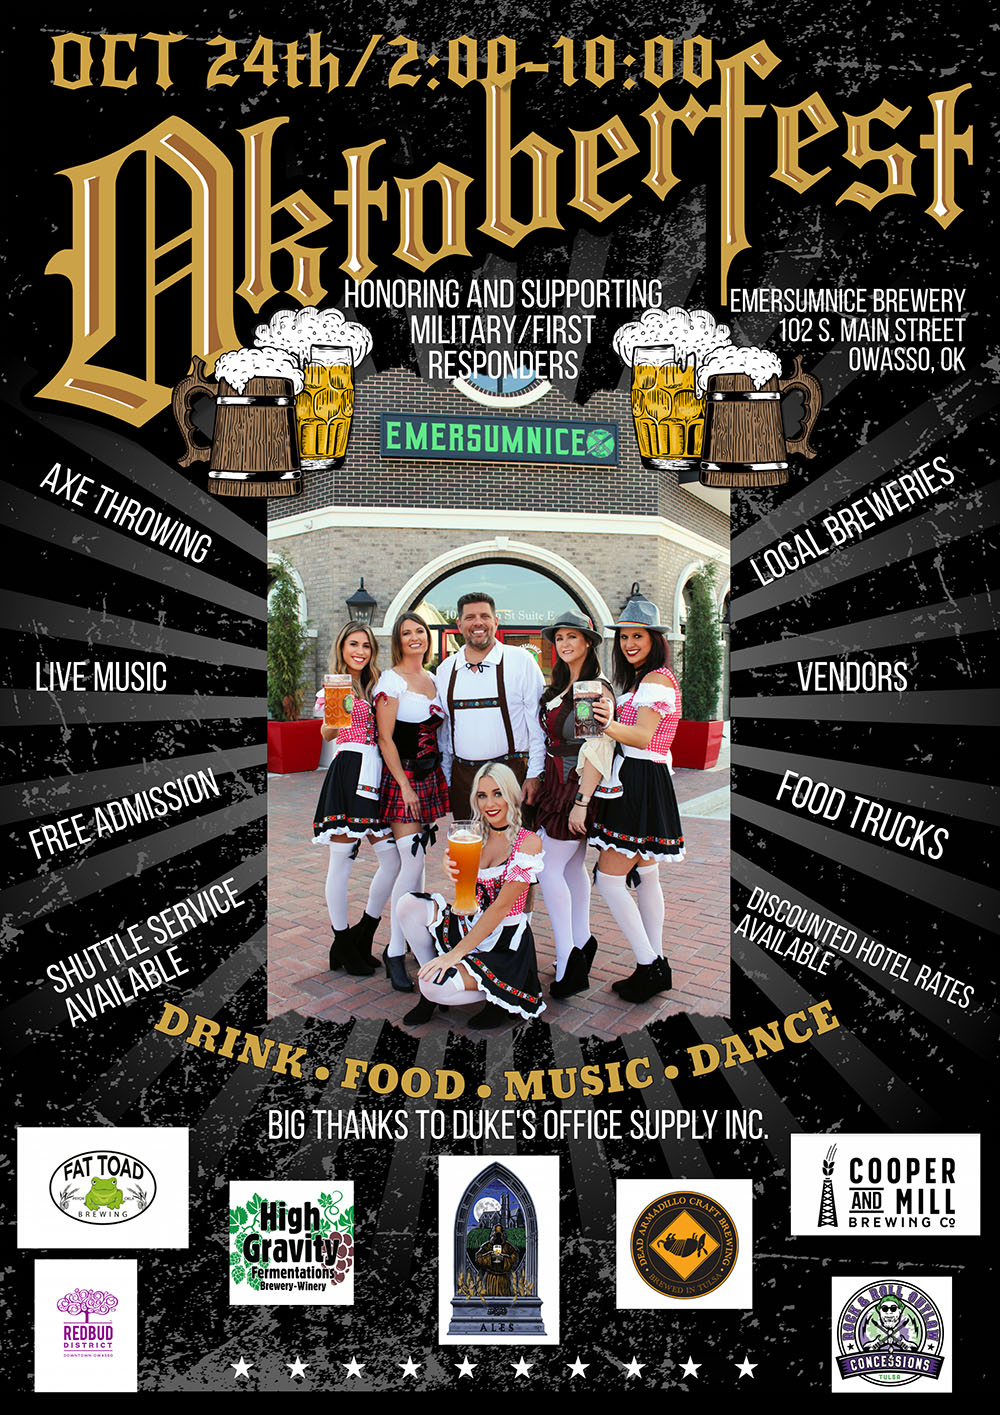 Owasso Octoberfest Fundraiser Saturday